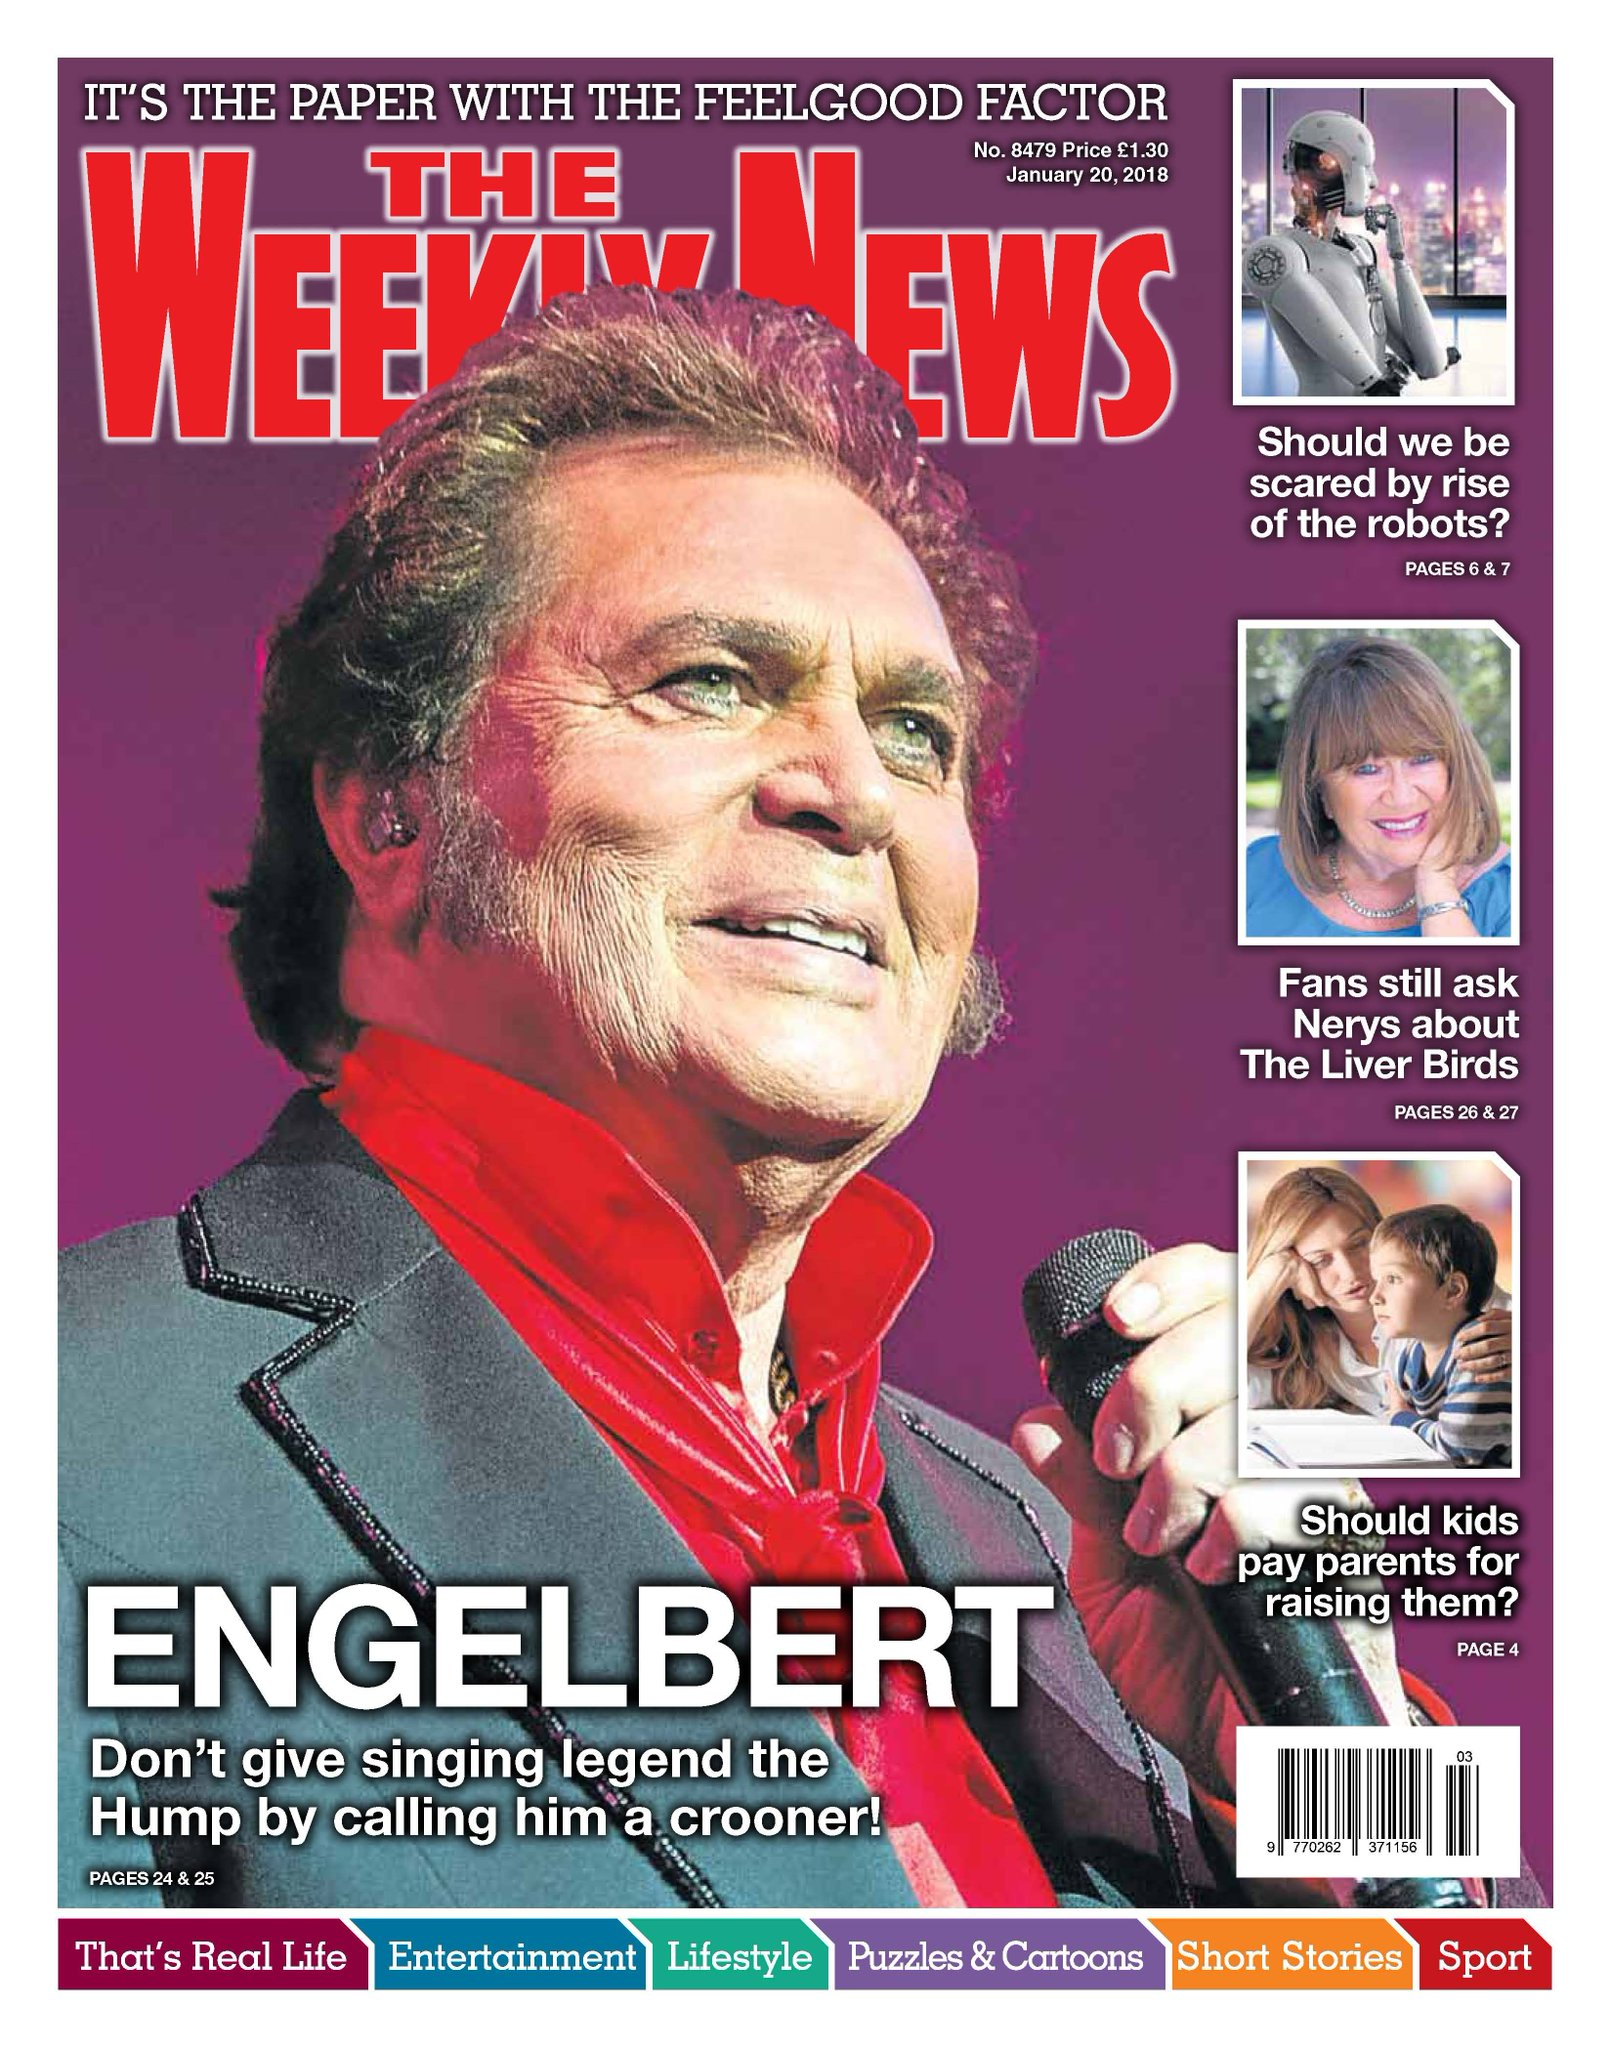 Engelbert Humperdinck Explains Why He is Not a Crooner in New Interview